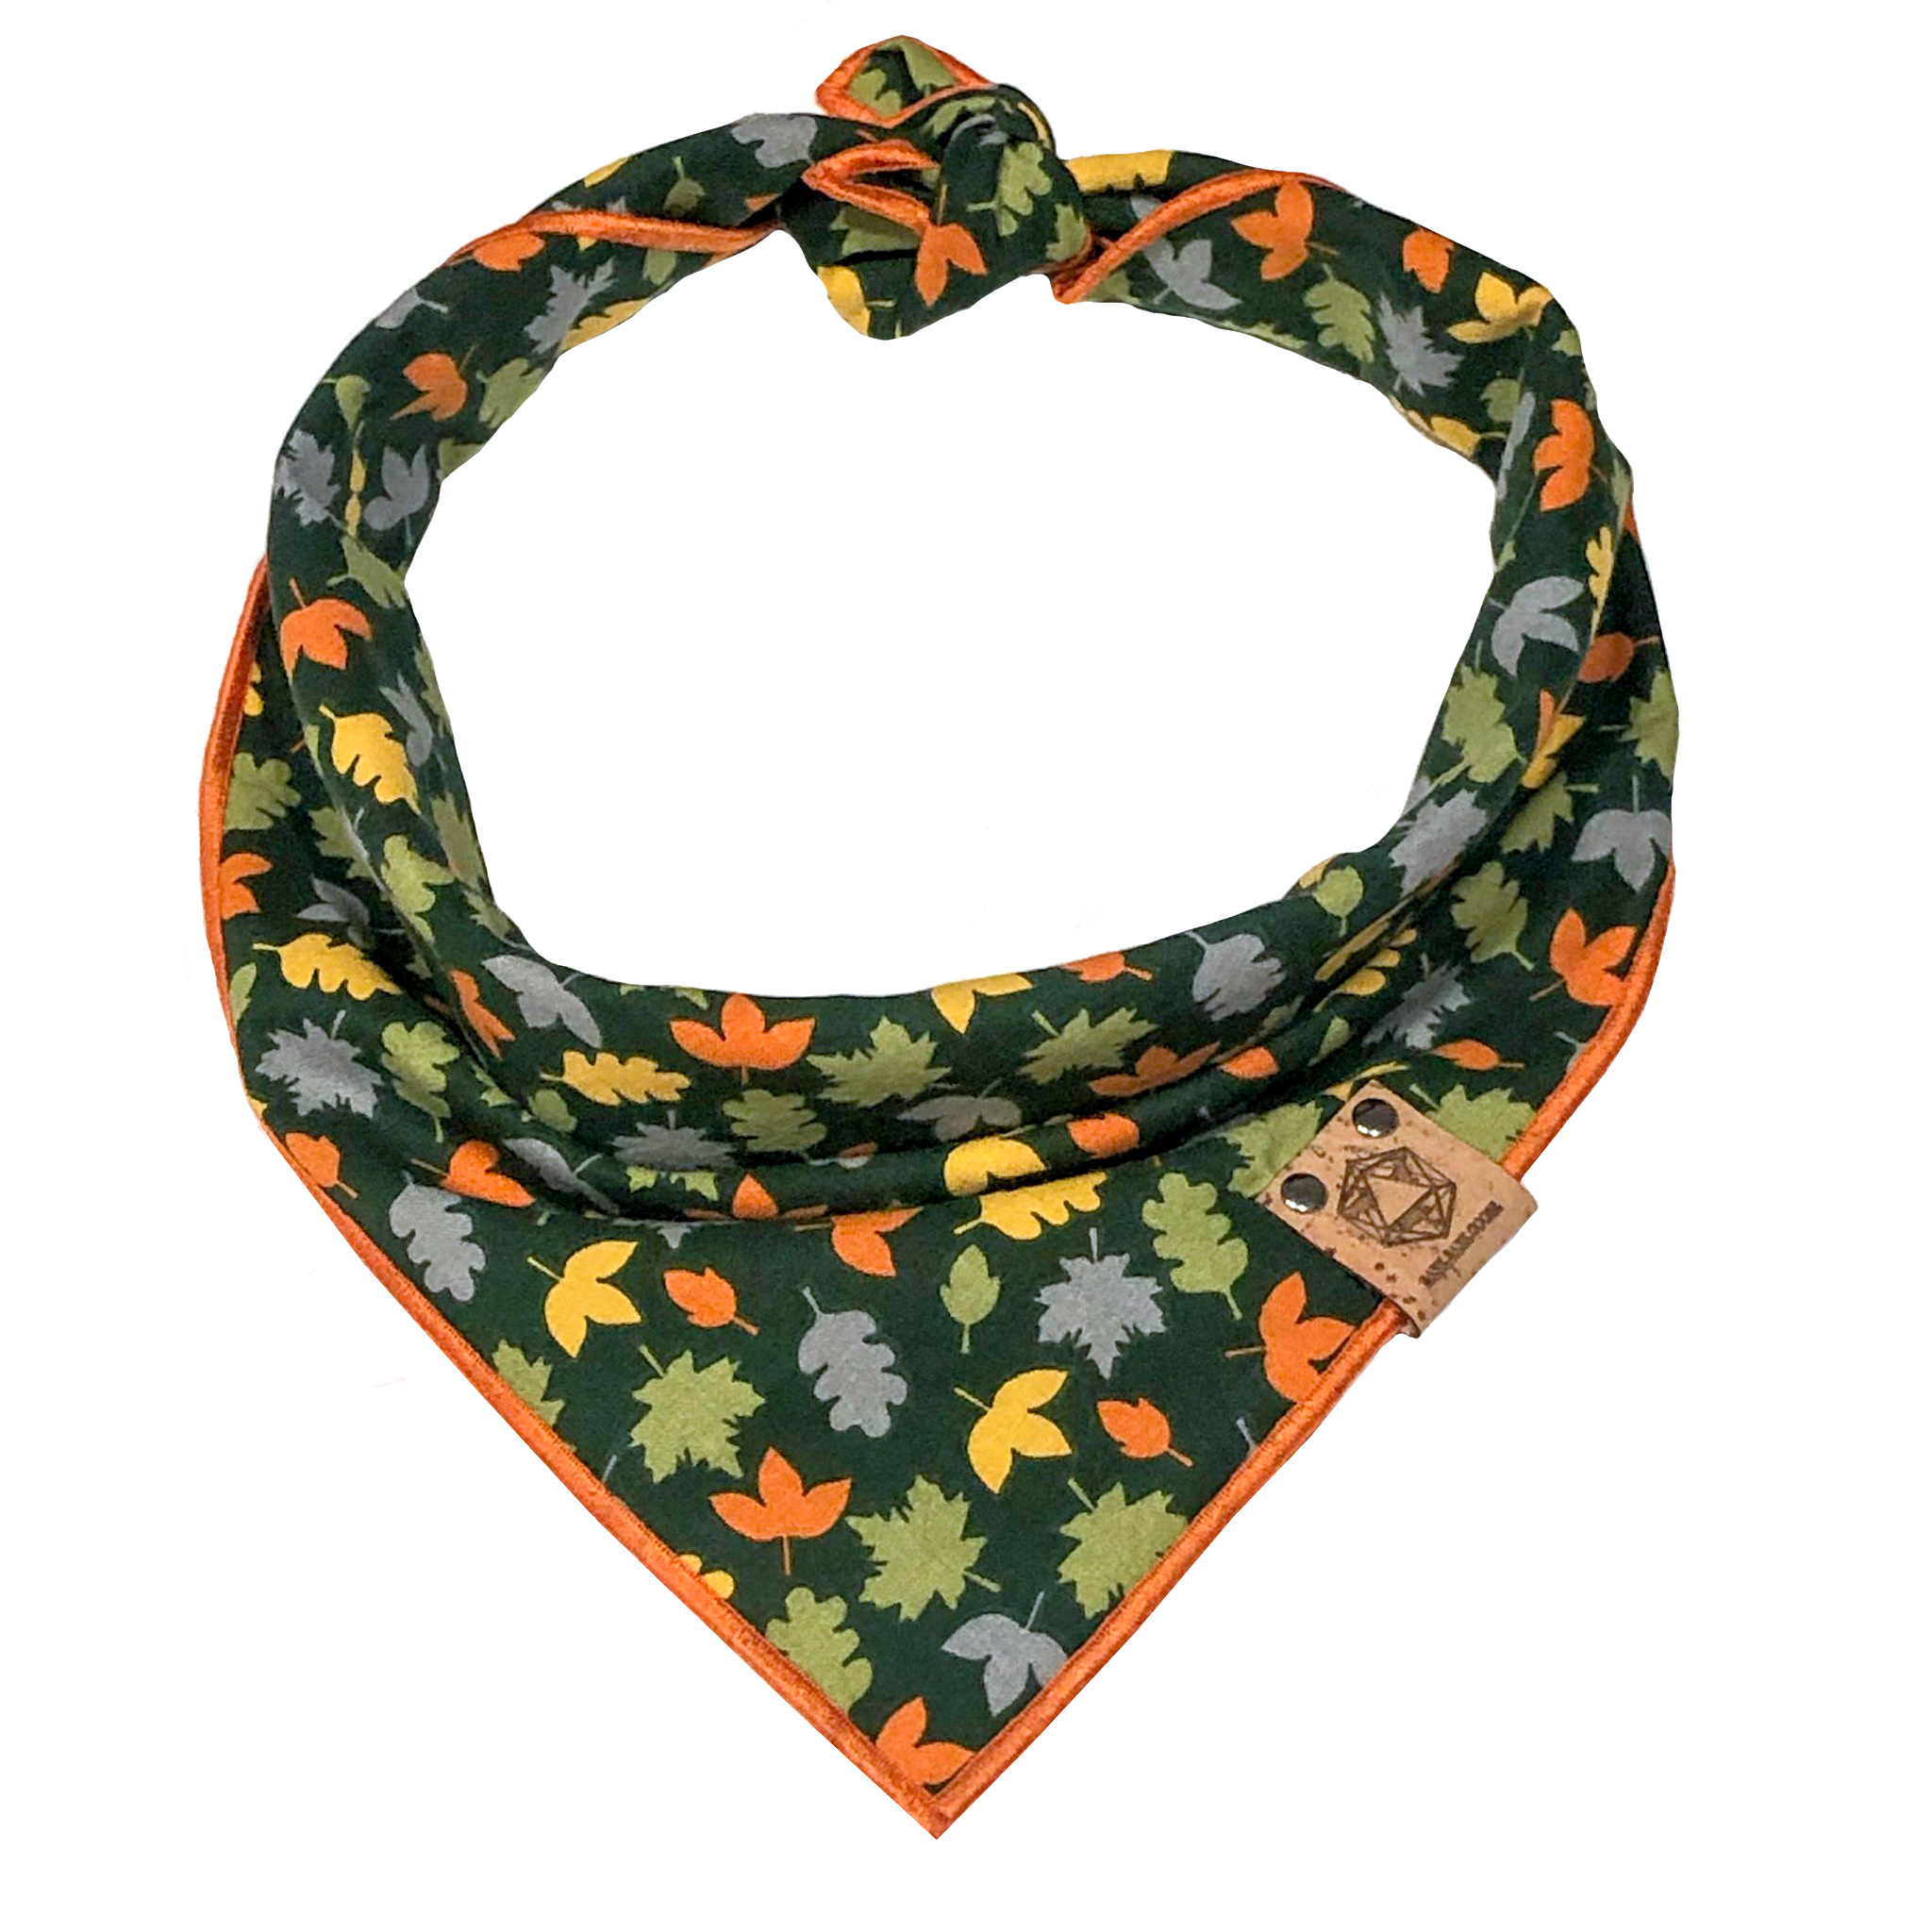 dog-bandana-green-leaves-for-fall.jpg